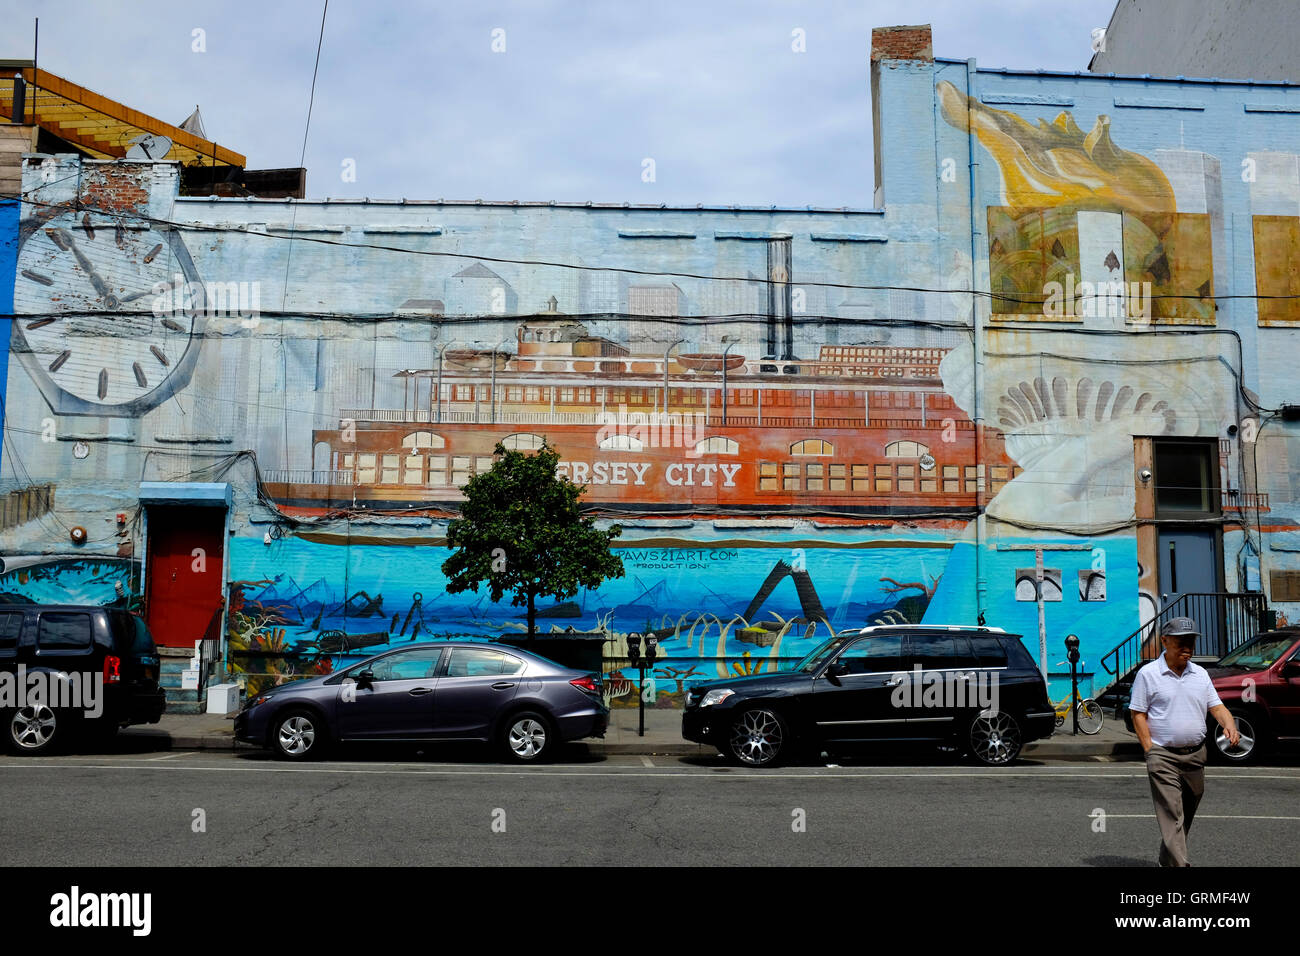 Mural on building facade along Christopher Columbus Drive.Jersey City,New Jersey,USA - Stock Image